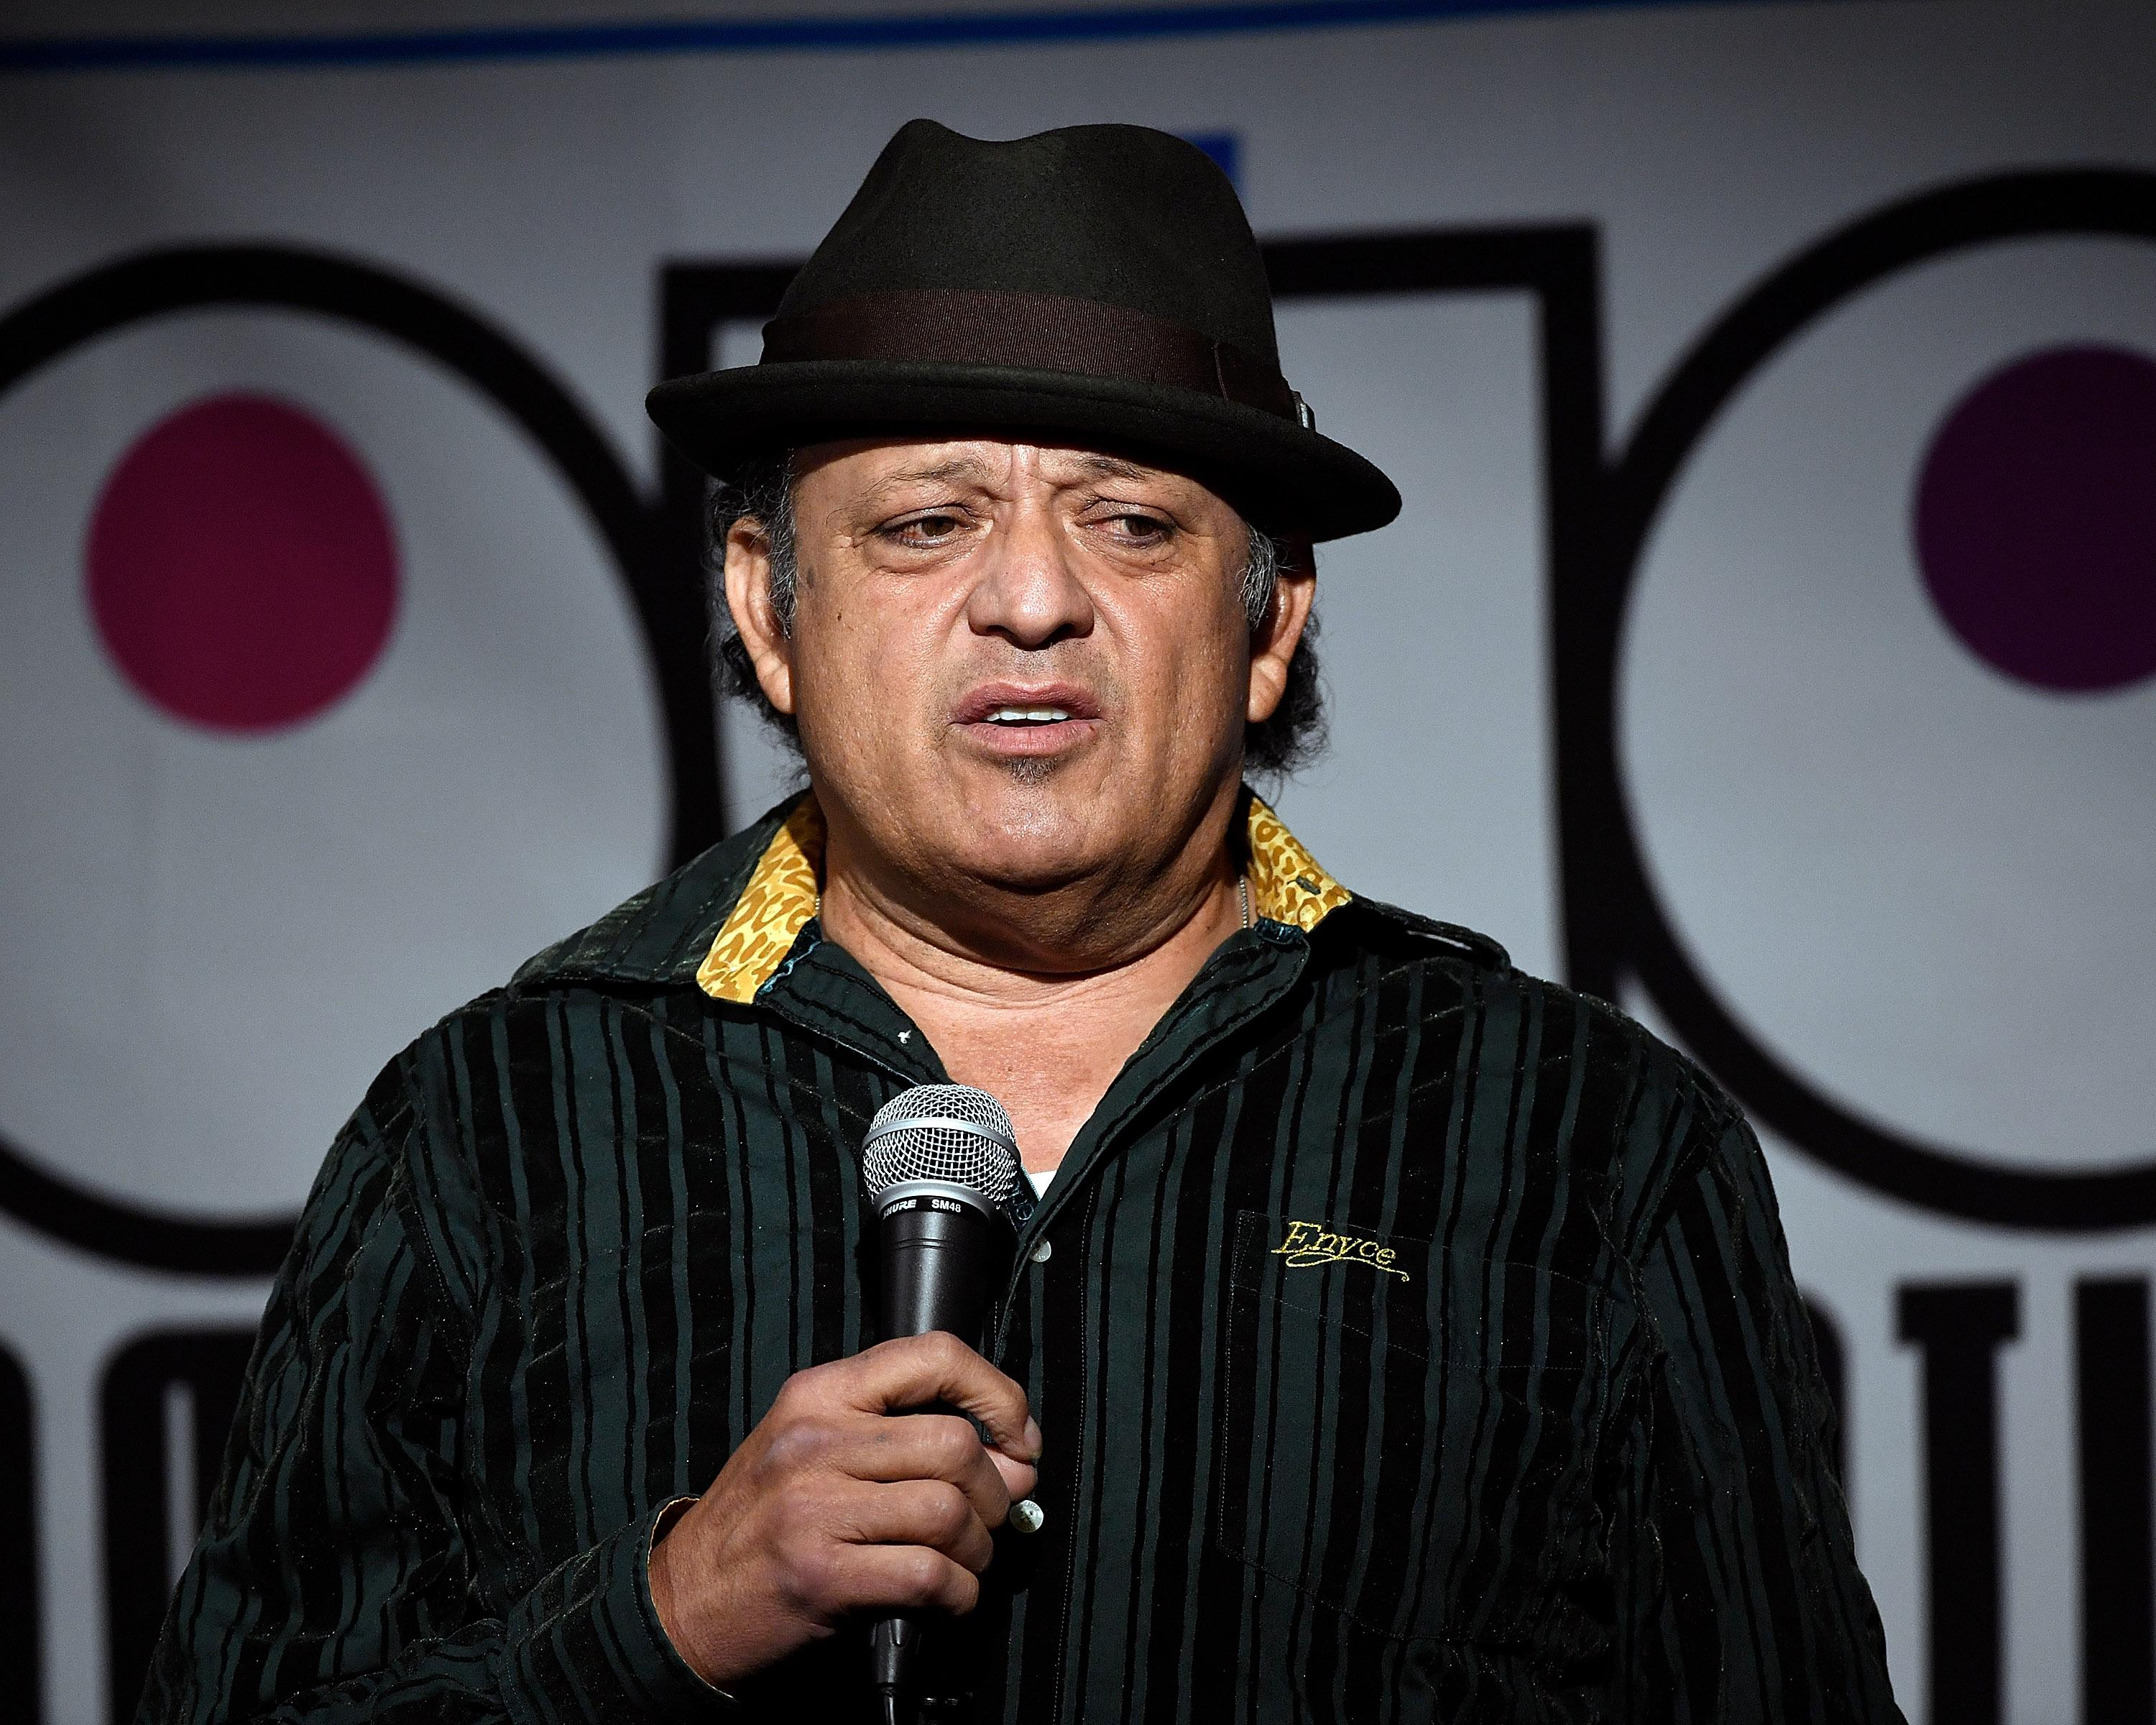 Comic Paul Rodriguez admits he's a Trump supporter: 'It's a terrible thing for me to say this. I will pay the price for it'